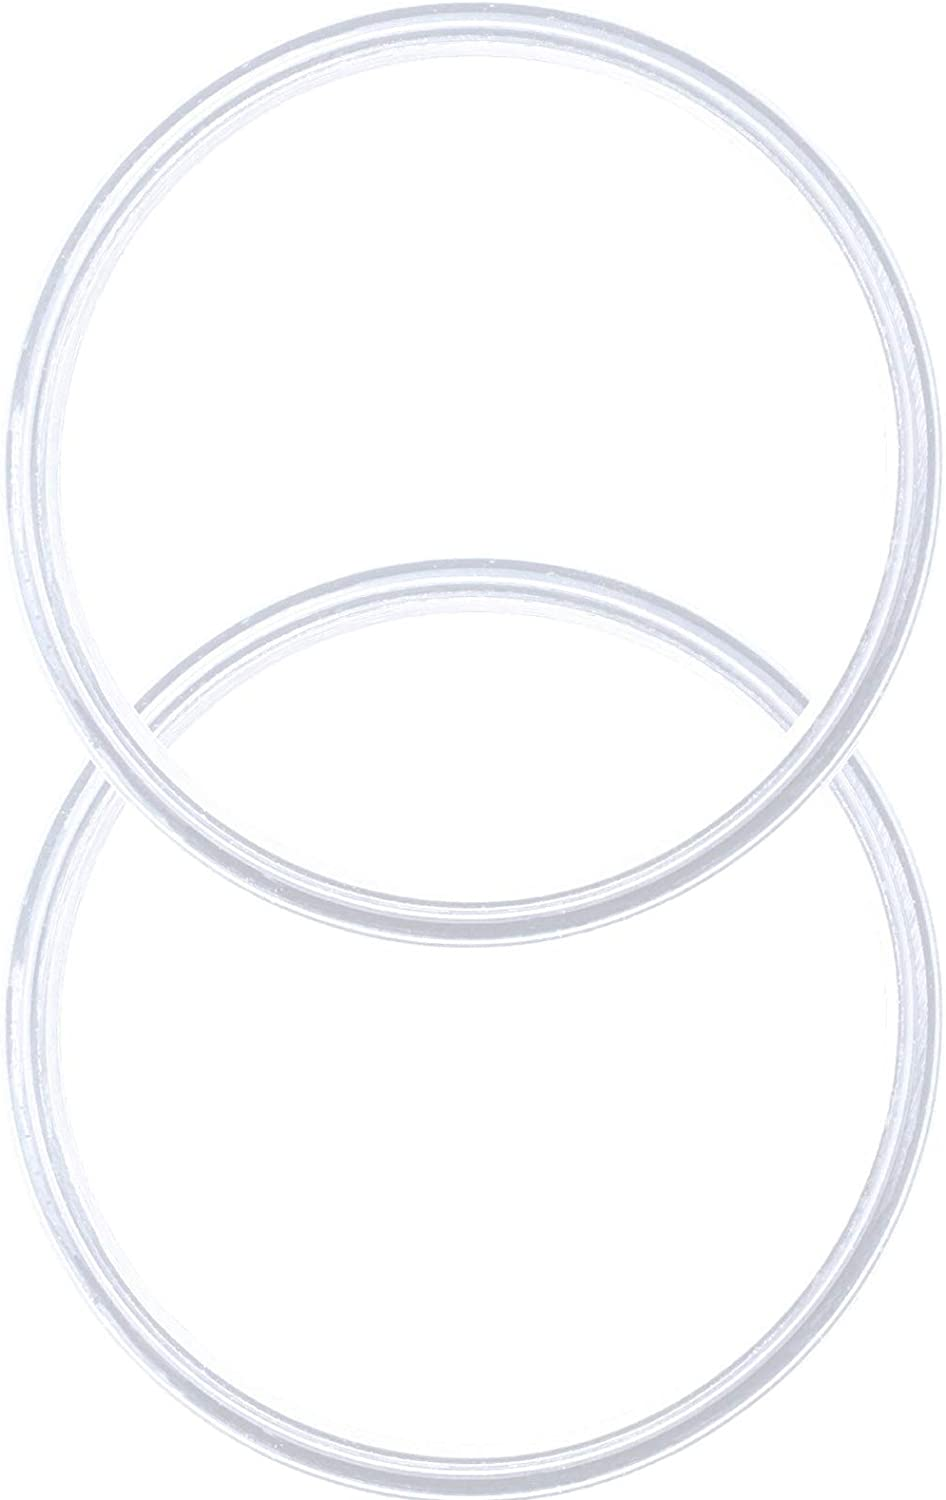 Pack of 2-20/10 oz Replacement Rubber Lid Ring, Gasket Seals, Lid for Insulated Stainless Steel Tumbler, Cups Vacuum Effect fit for Brands- Yeti, Ozark Trail, Beast, White by C&Berg Model 2020